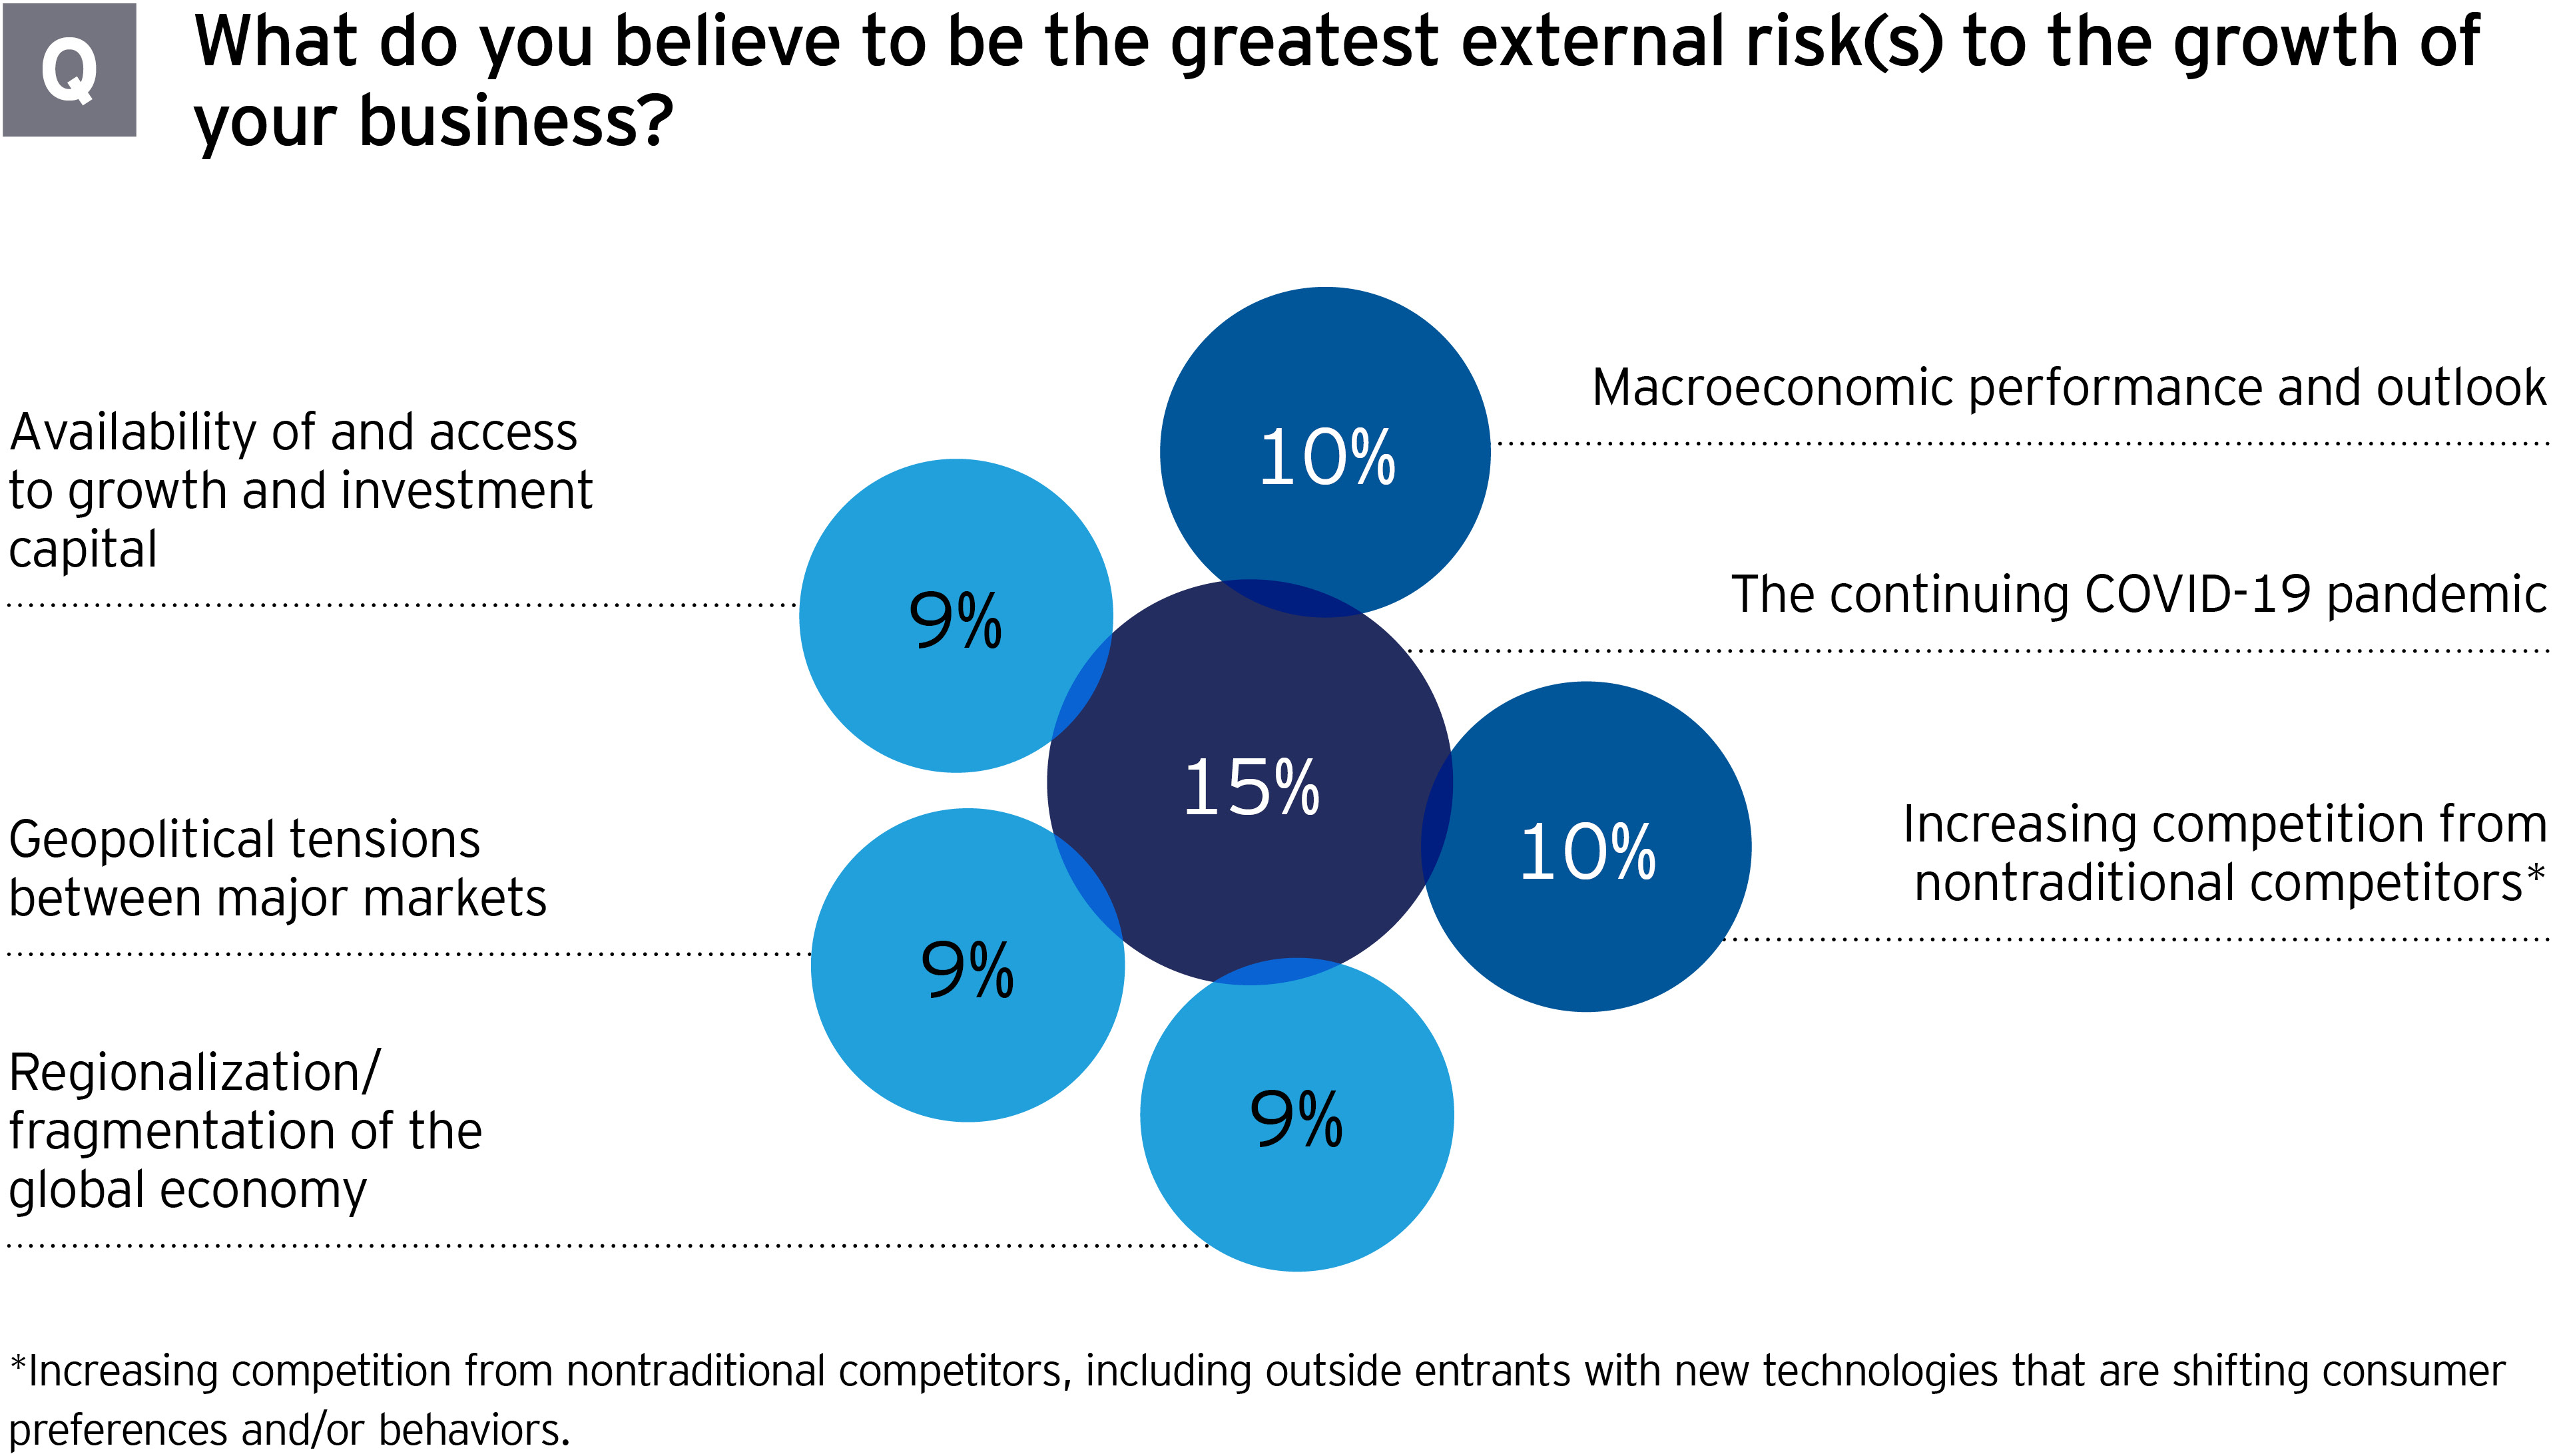 M&A survey: Greatest external risks to growth of business